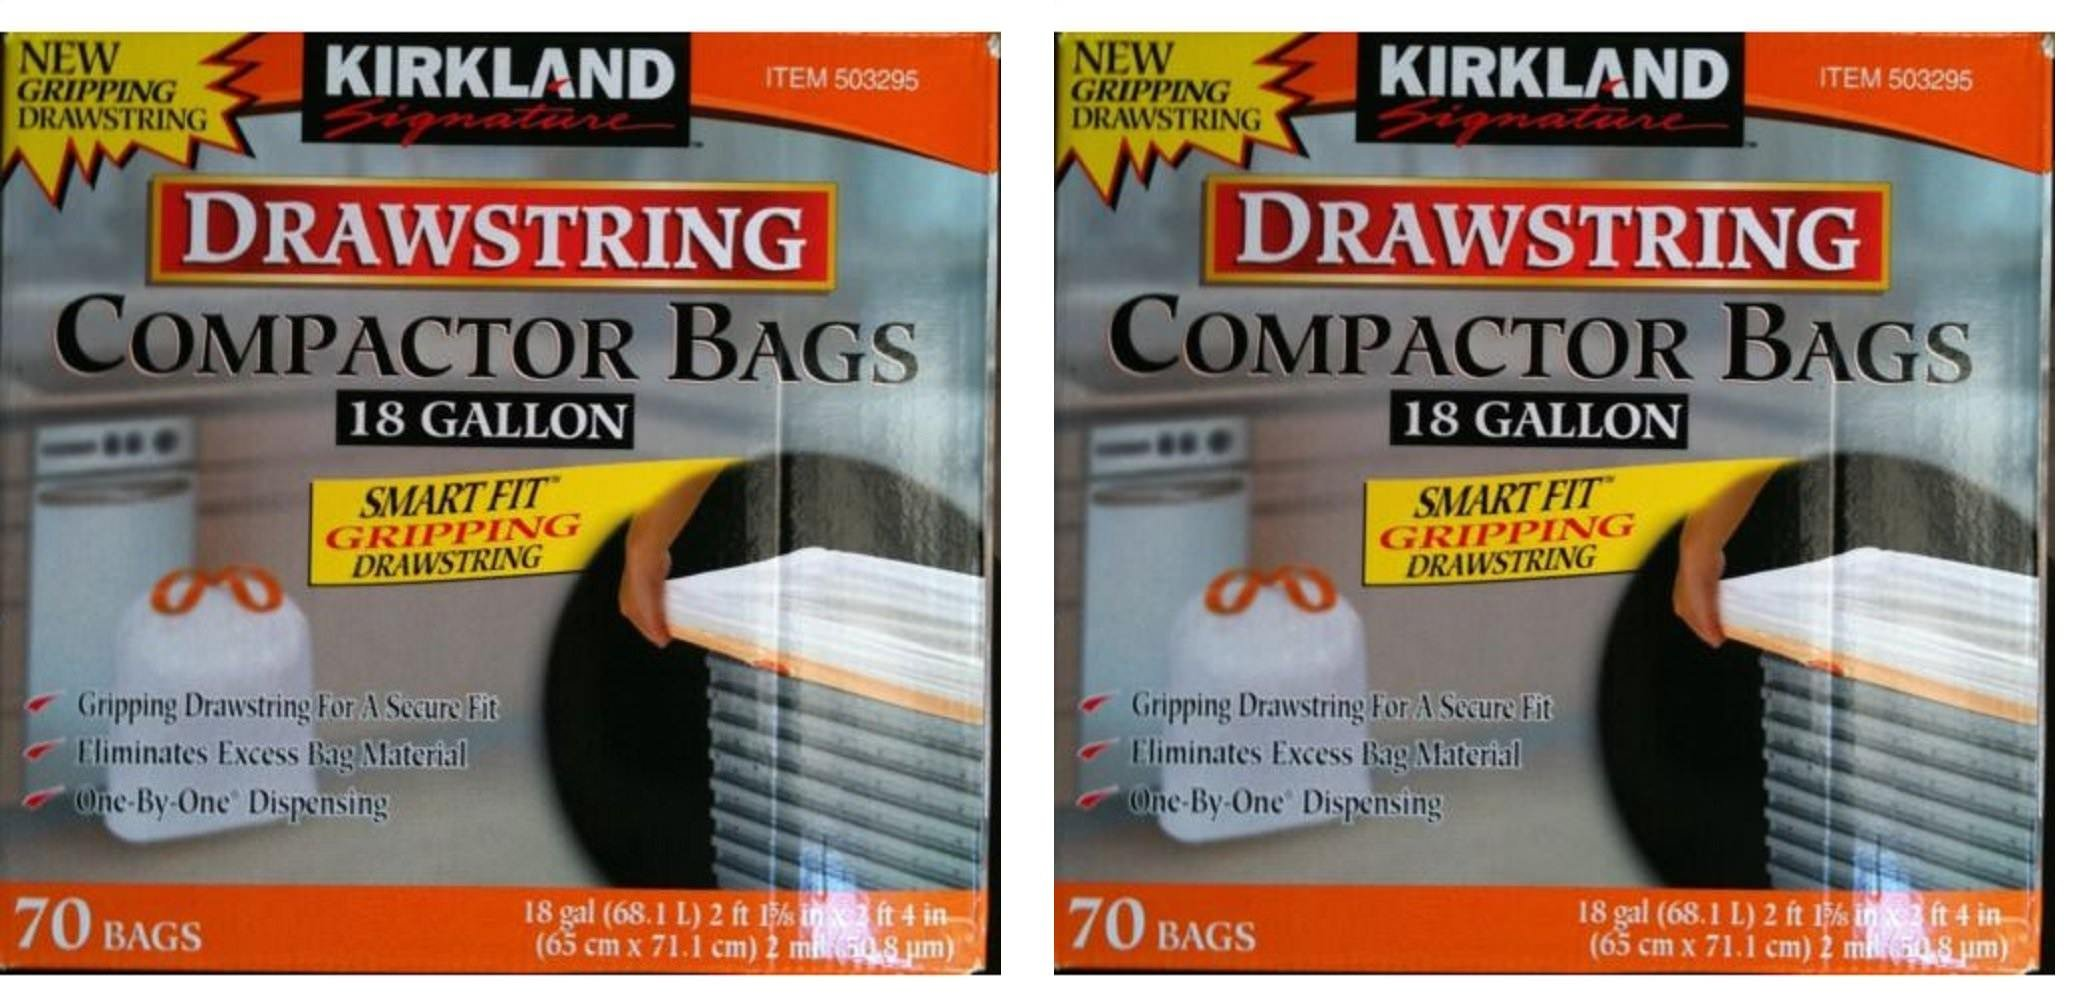 Kirkland Compactor Bags Smart Fit Gripping Drawstring Trash Bags 18 Gallon, 2 Pack (70 ct Box)